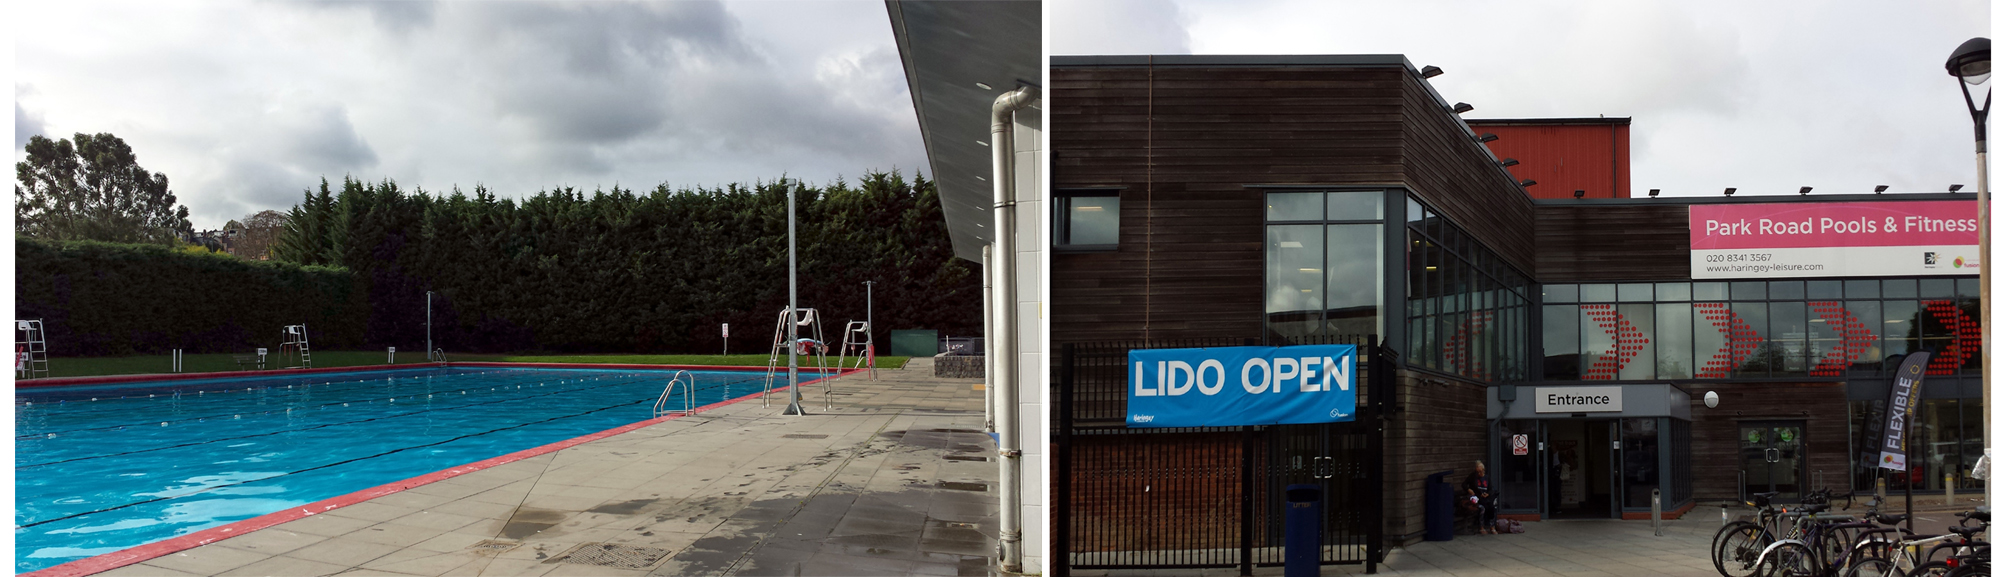 outdoor pool and front of building with banner 'lido open'